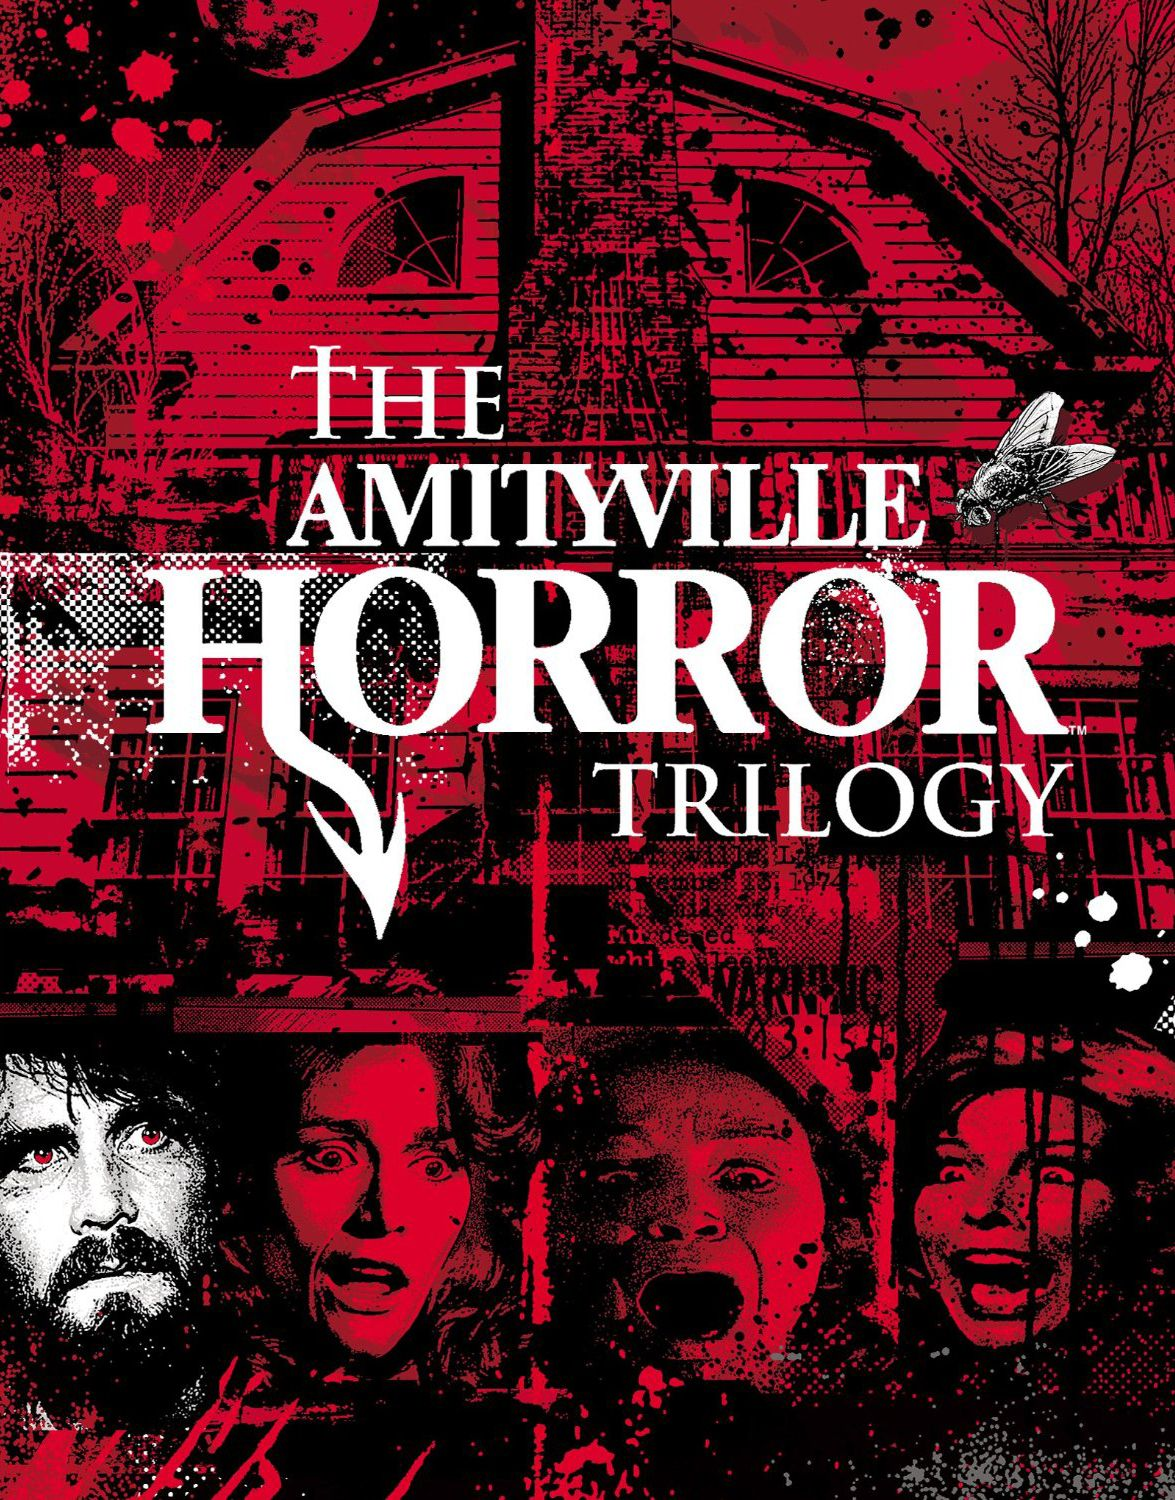 a review of the book the amityville horror The amityville horror is a book by american author jay anson, published in september 1977 it is also the basis of a series of films released from one edition of the book has a quote from a review in the los angeles times on the front cover stating: a fascinating, frightening book the scariest true.